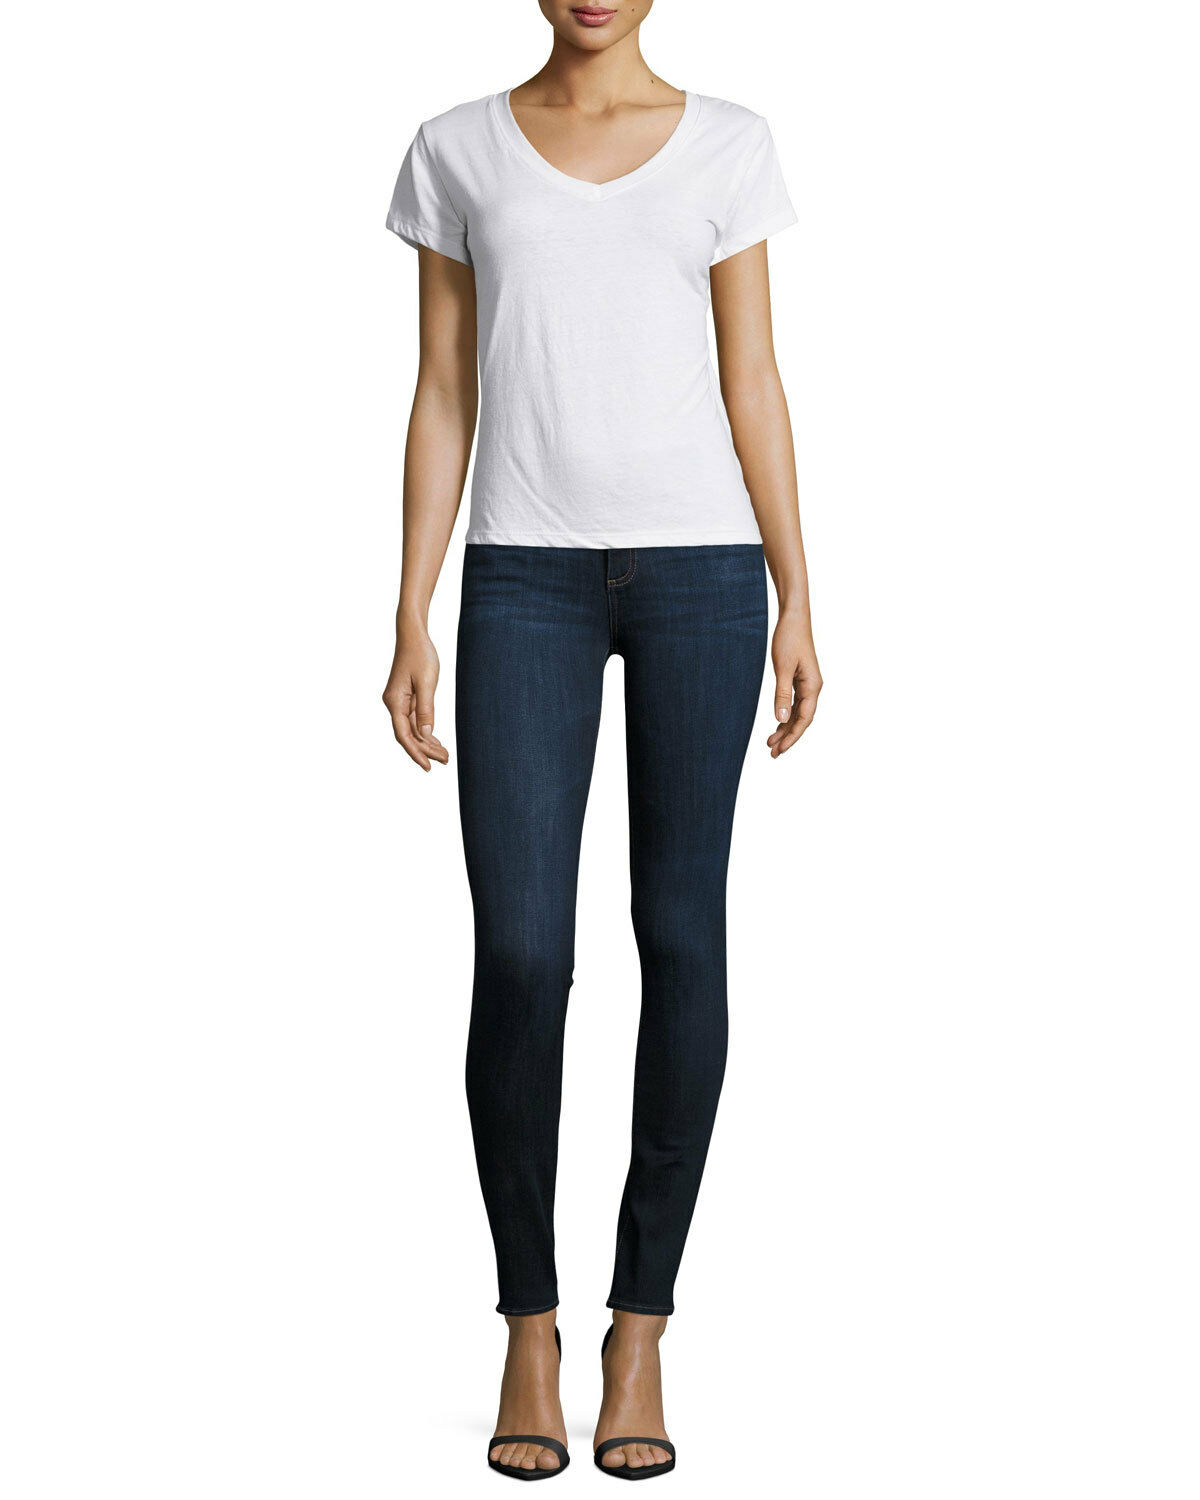 DL1961 NWT Florence Instasculpt Rowland Wash Skinny Jeans, Size 30, Inseam 29